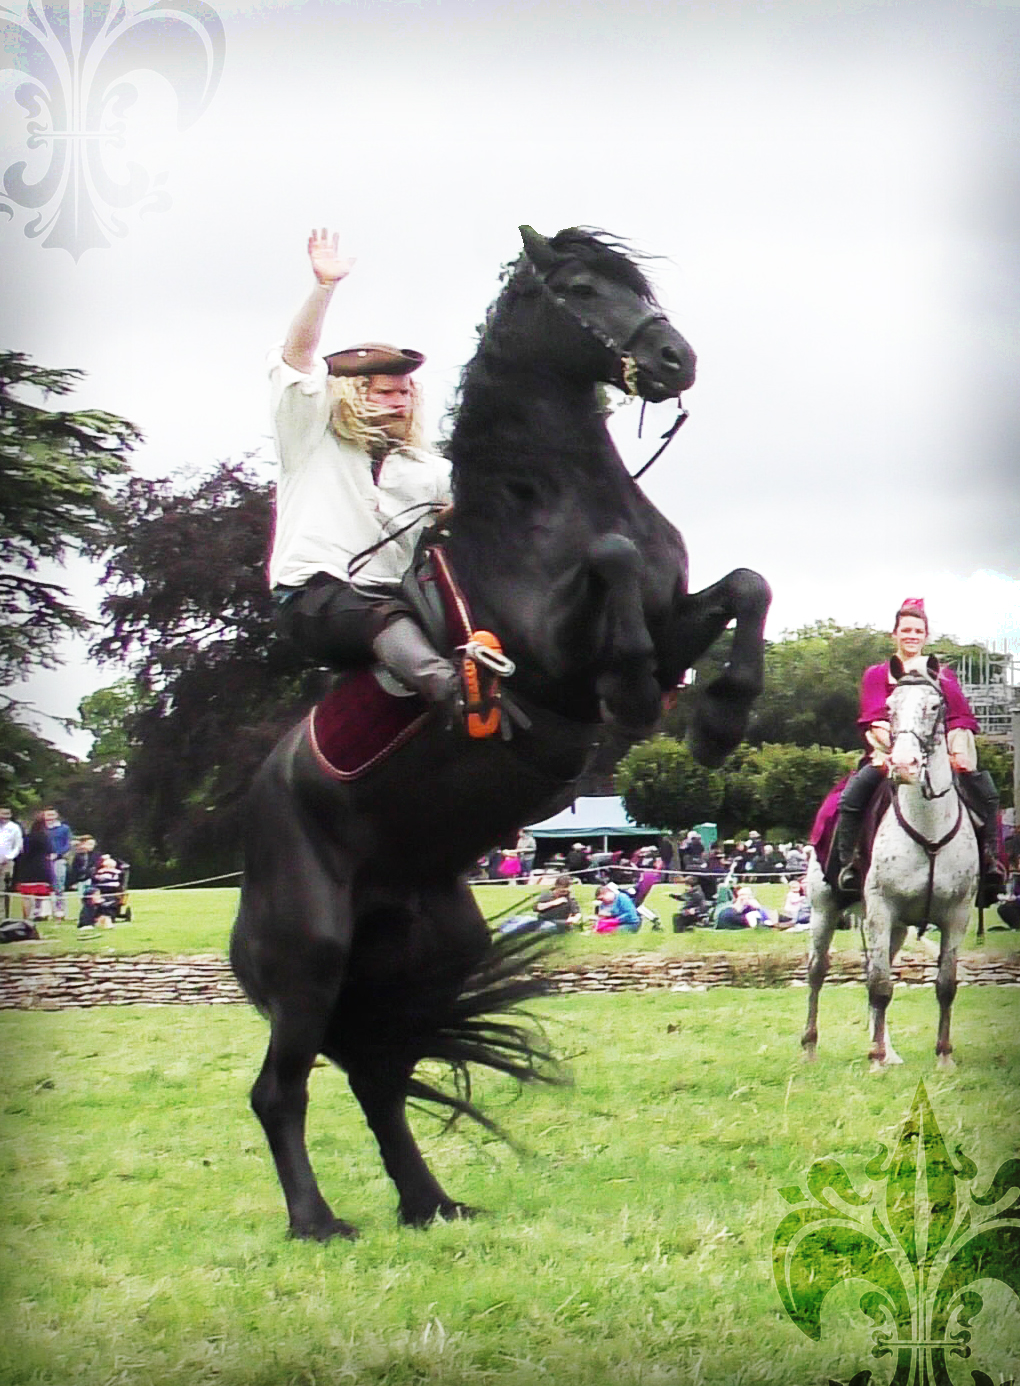 The Cavalry of Heroes - Wedding Horse and Carriage, driving horse, country, Herefordshire and Wales